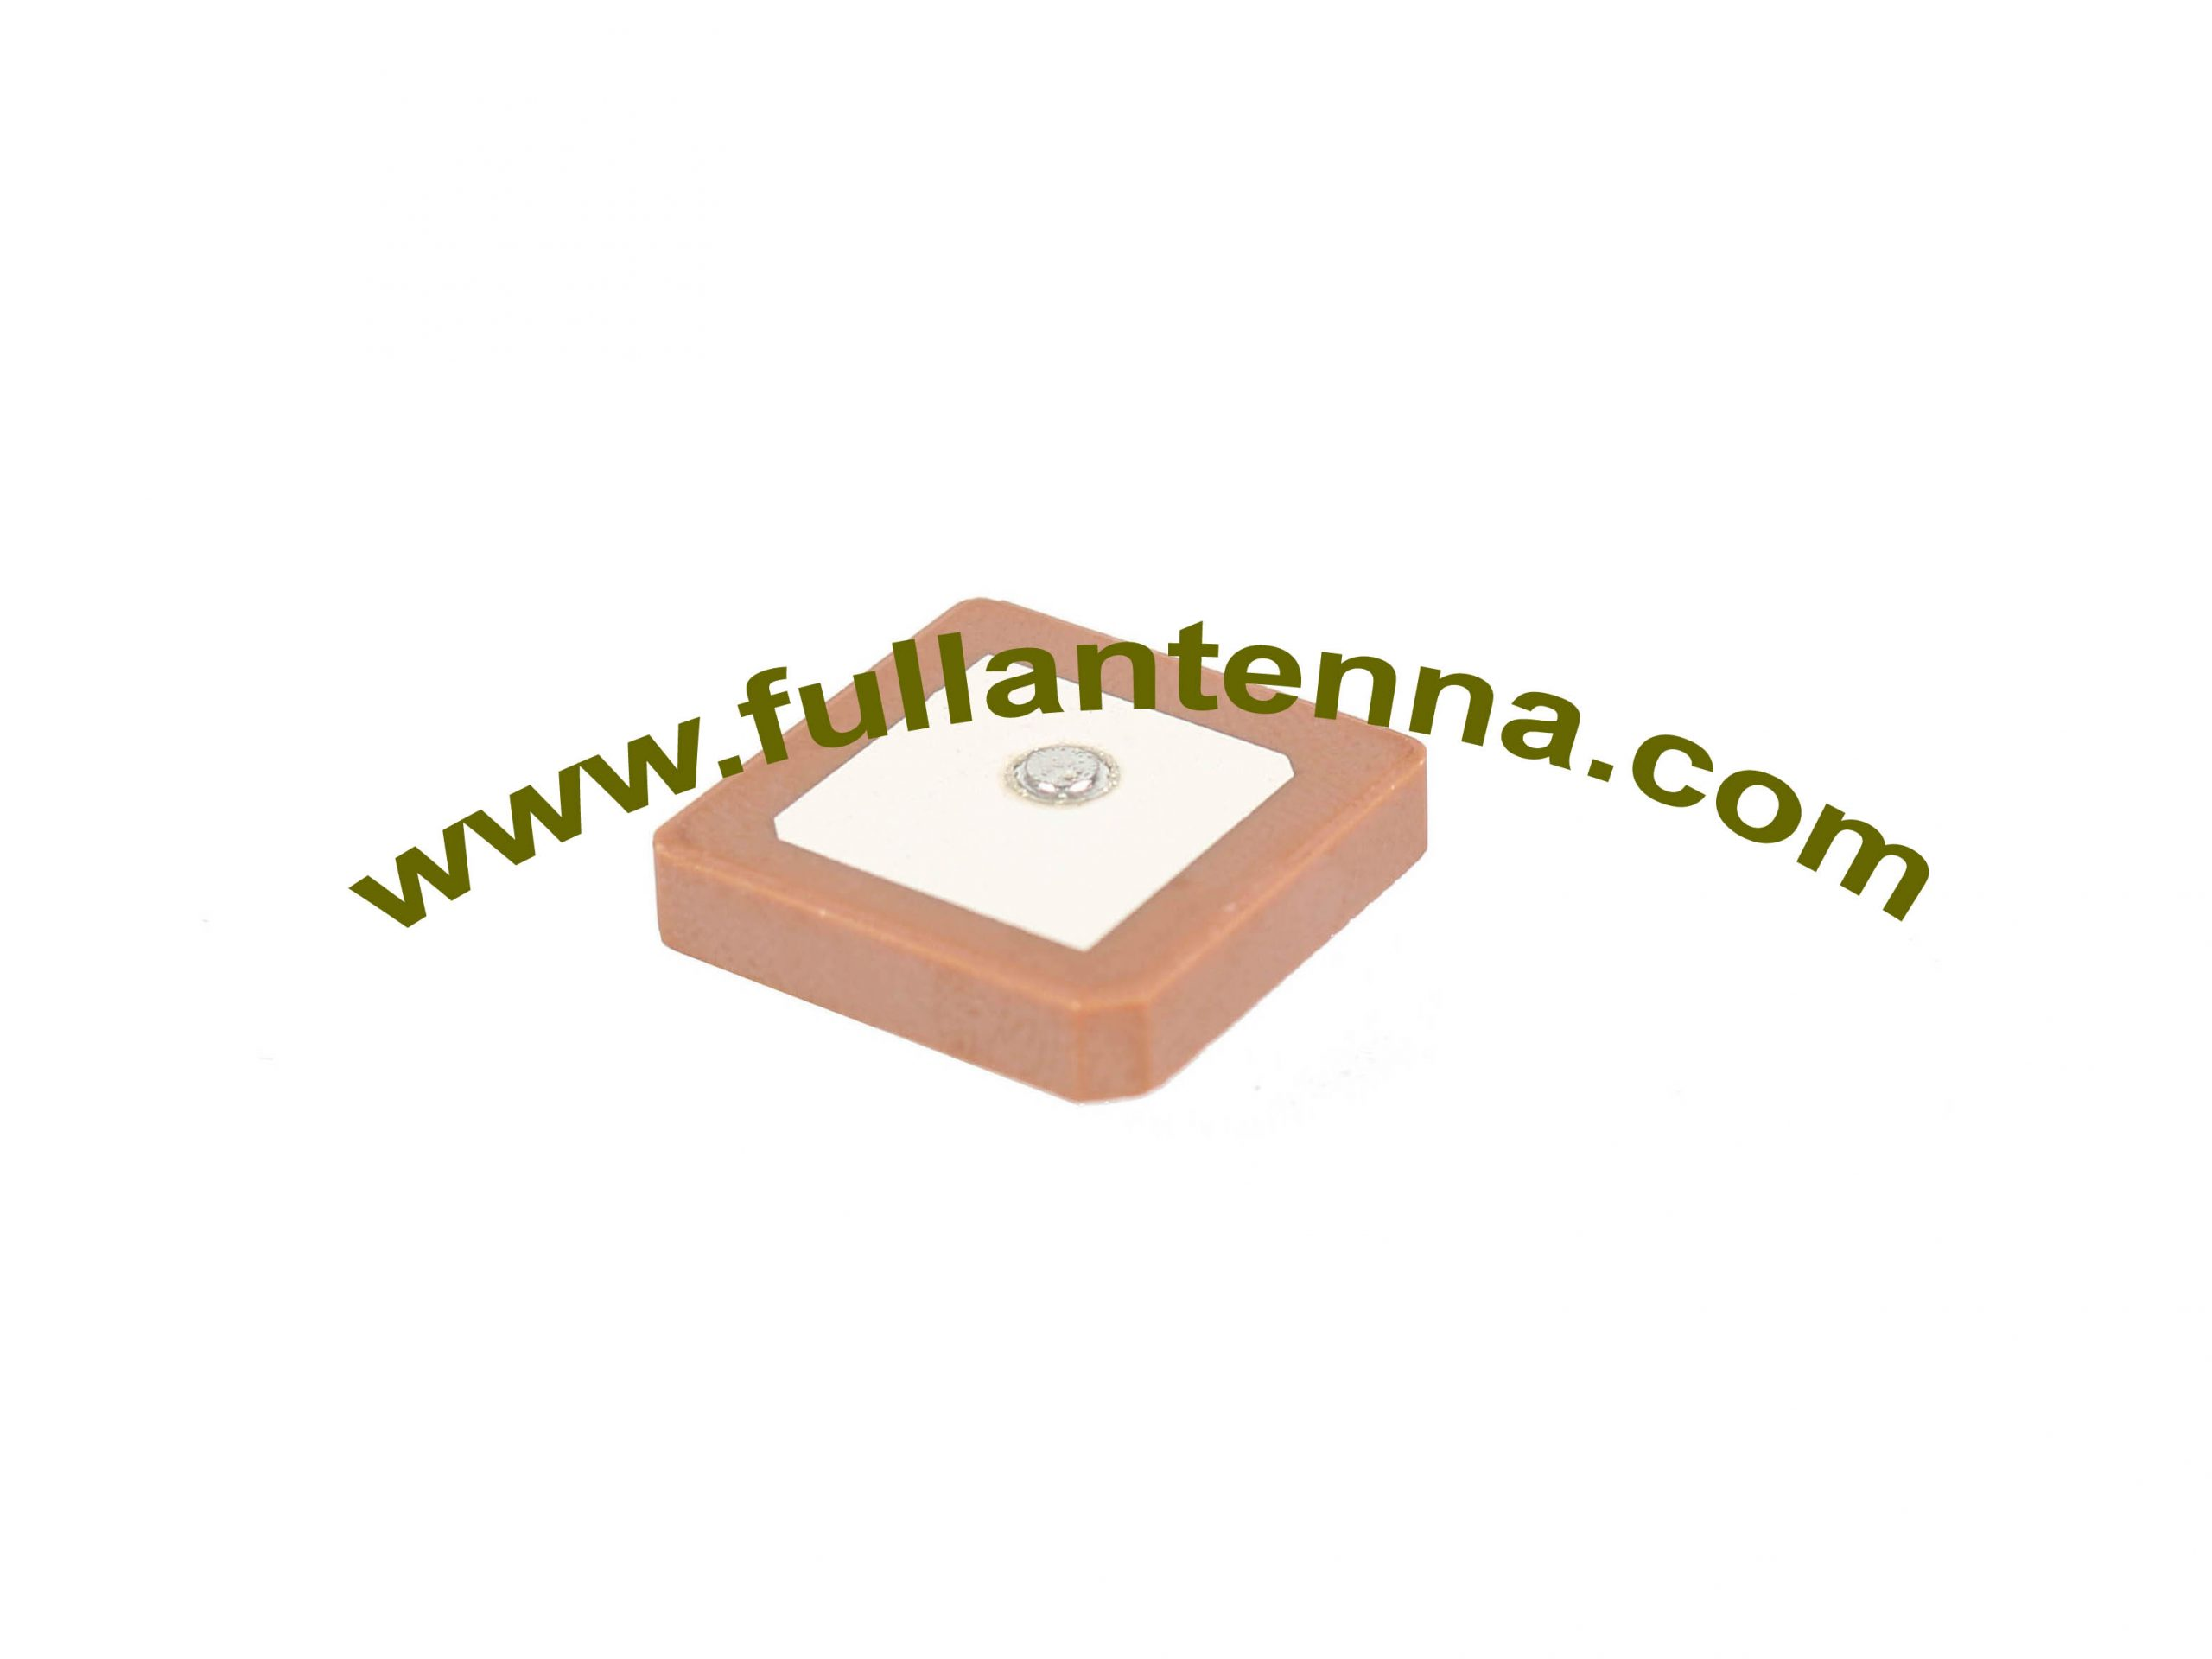 P/N:FAGPSGlonass.184,GPS Glonass Dielectric Antenna,Gnss patch antenna  with pin mount